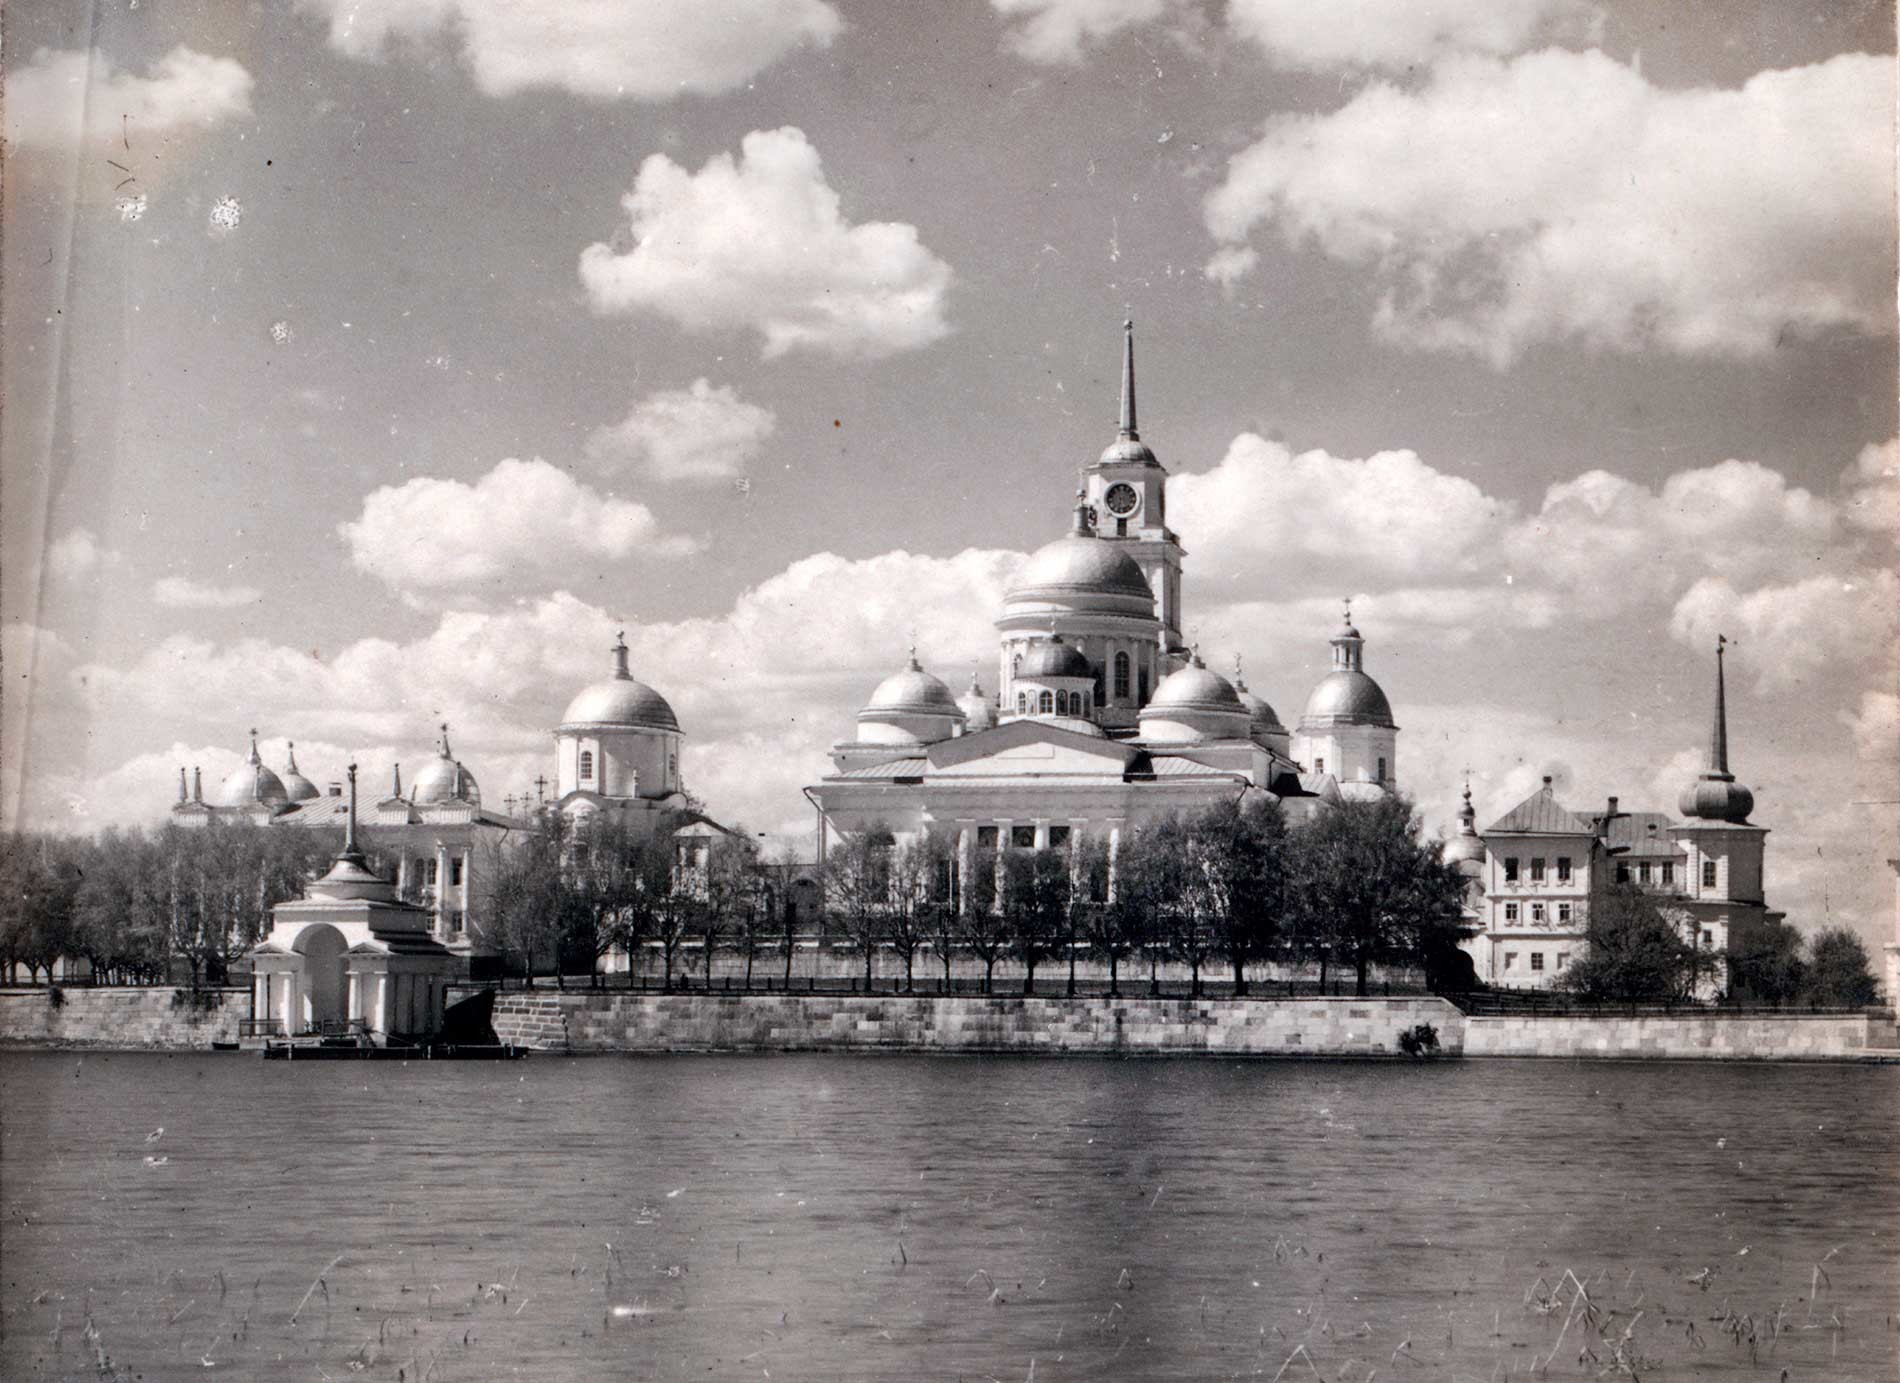 Nilova Pustyn, east view from small island. From left: Archbishop's Landing, Archbishop's Chambers, Church of St. Nilus Stolobensky over East Gate, Epiphany Cathedral&bell tower, Church of SS. Peter&Paul over West Gate, Church of All Saints, Refectory. Summer 1910.